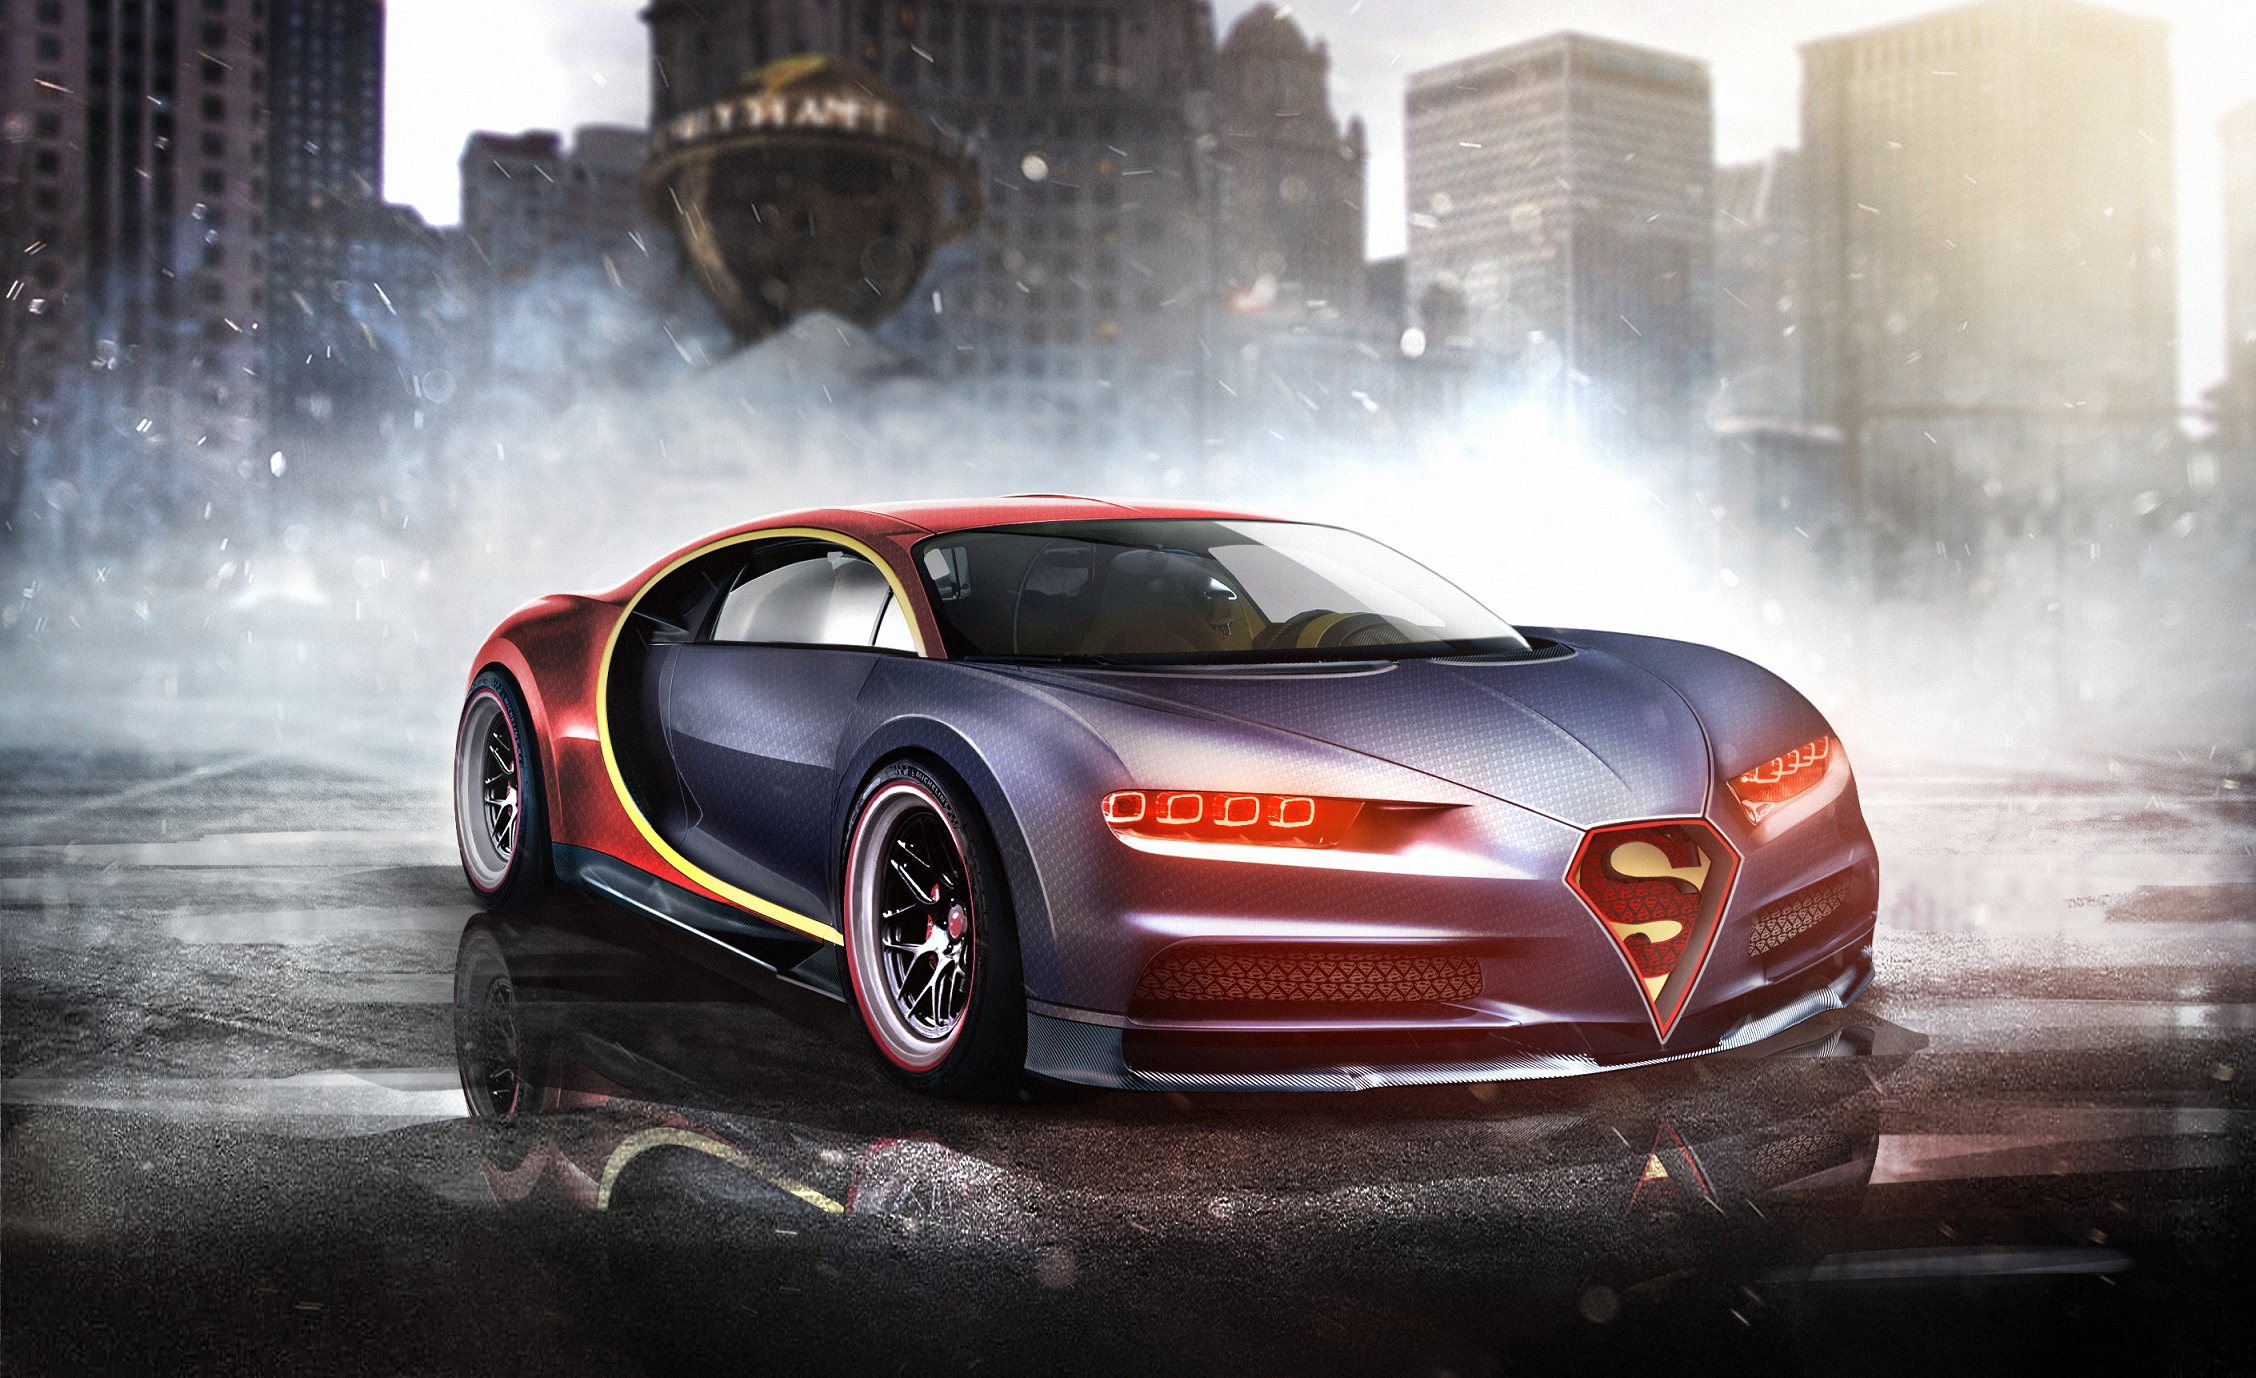 1280x2120 Bugatti Chiron Superman Iphone 6 Hd 4k Wallpapers Images